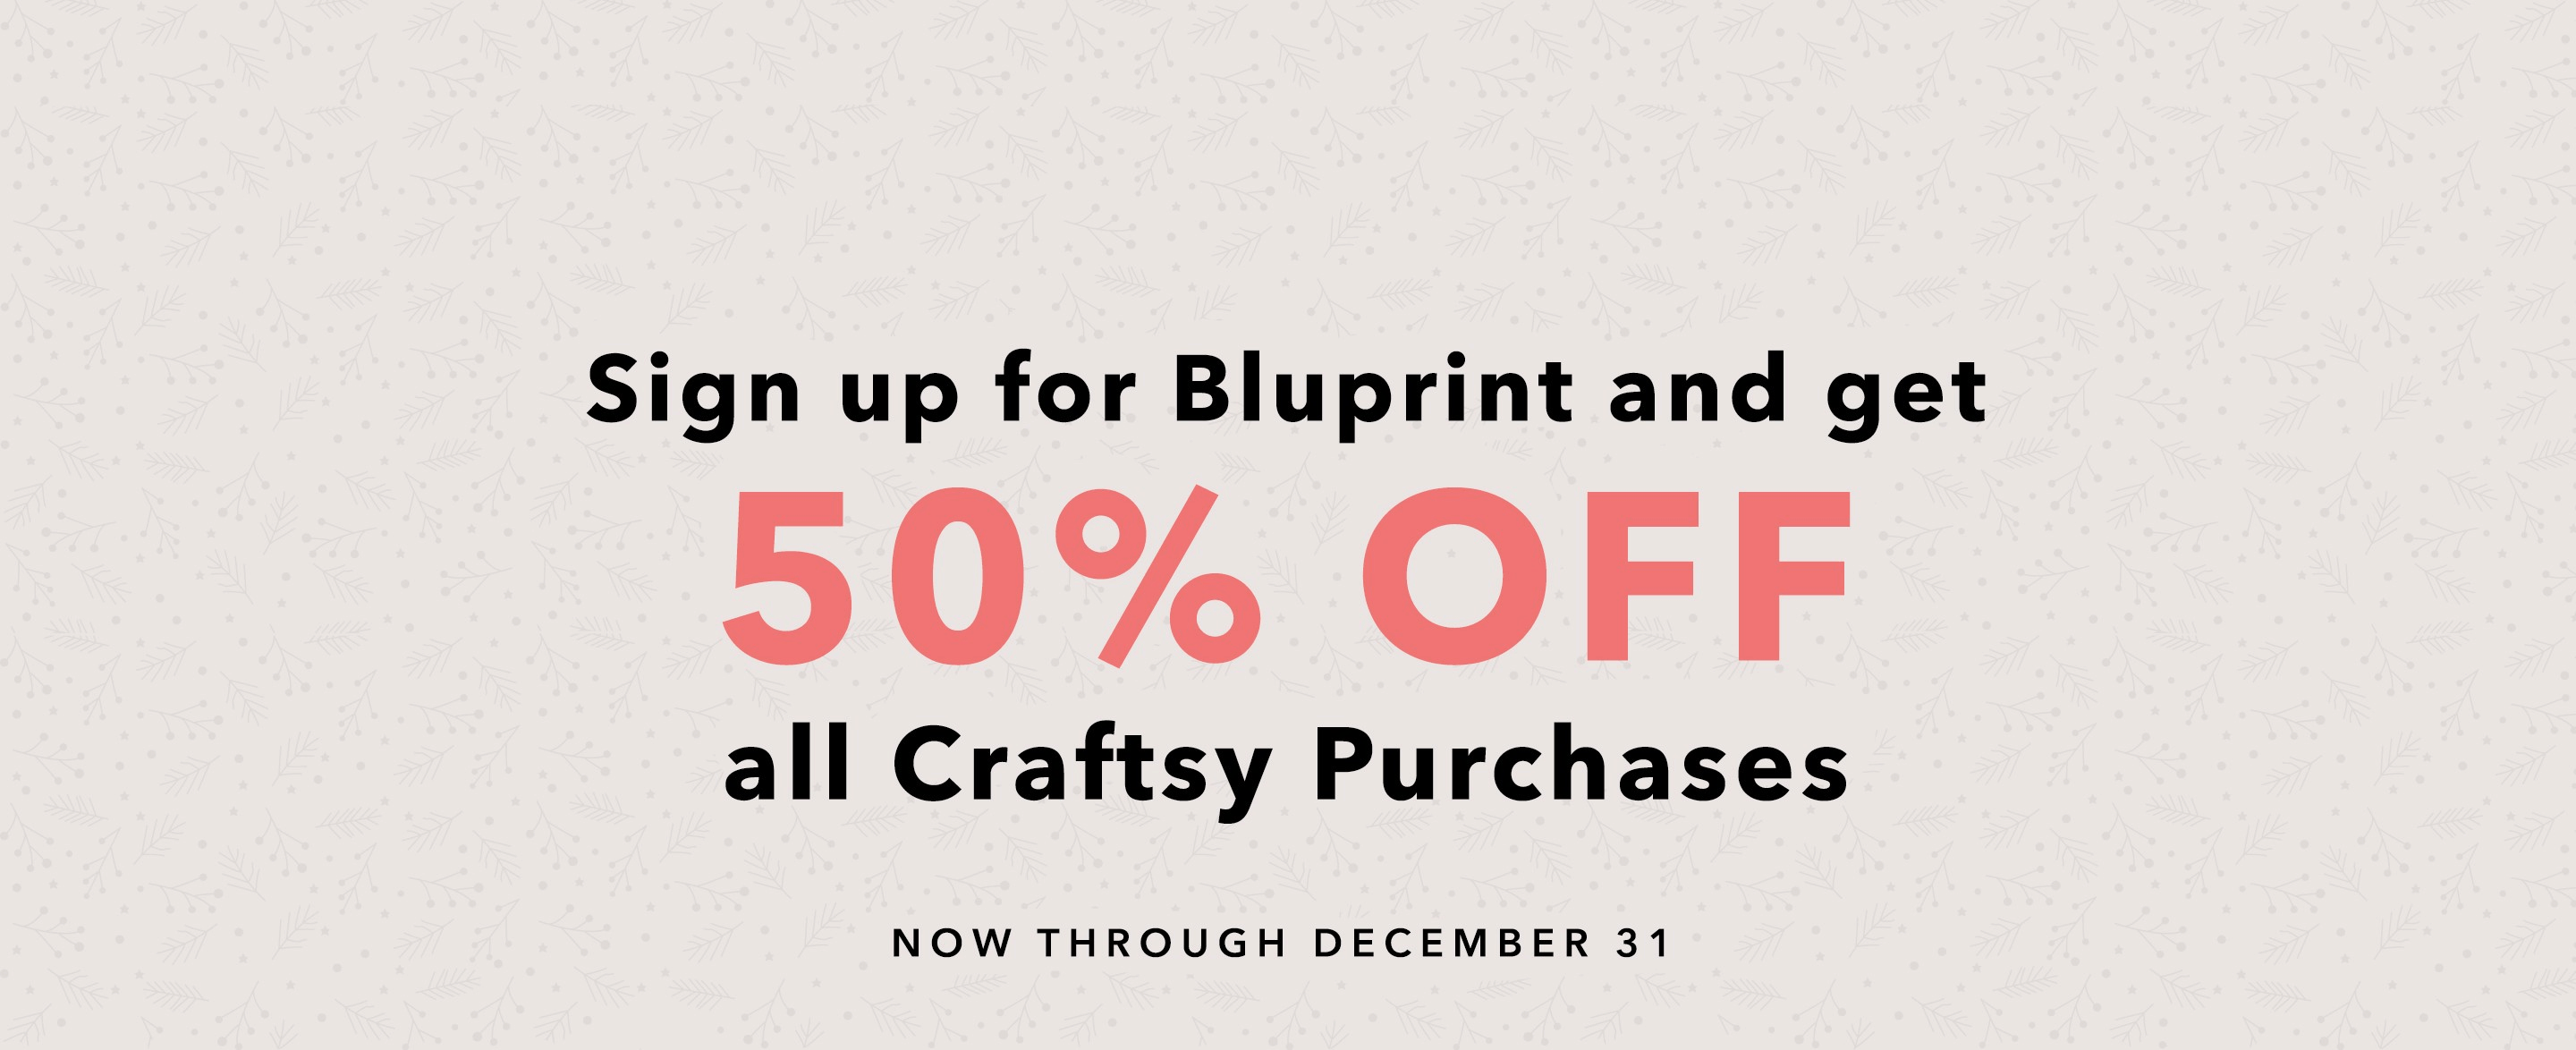 Bluprint Unlimited Deal: Get 50% Off Craftsy Purchases!